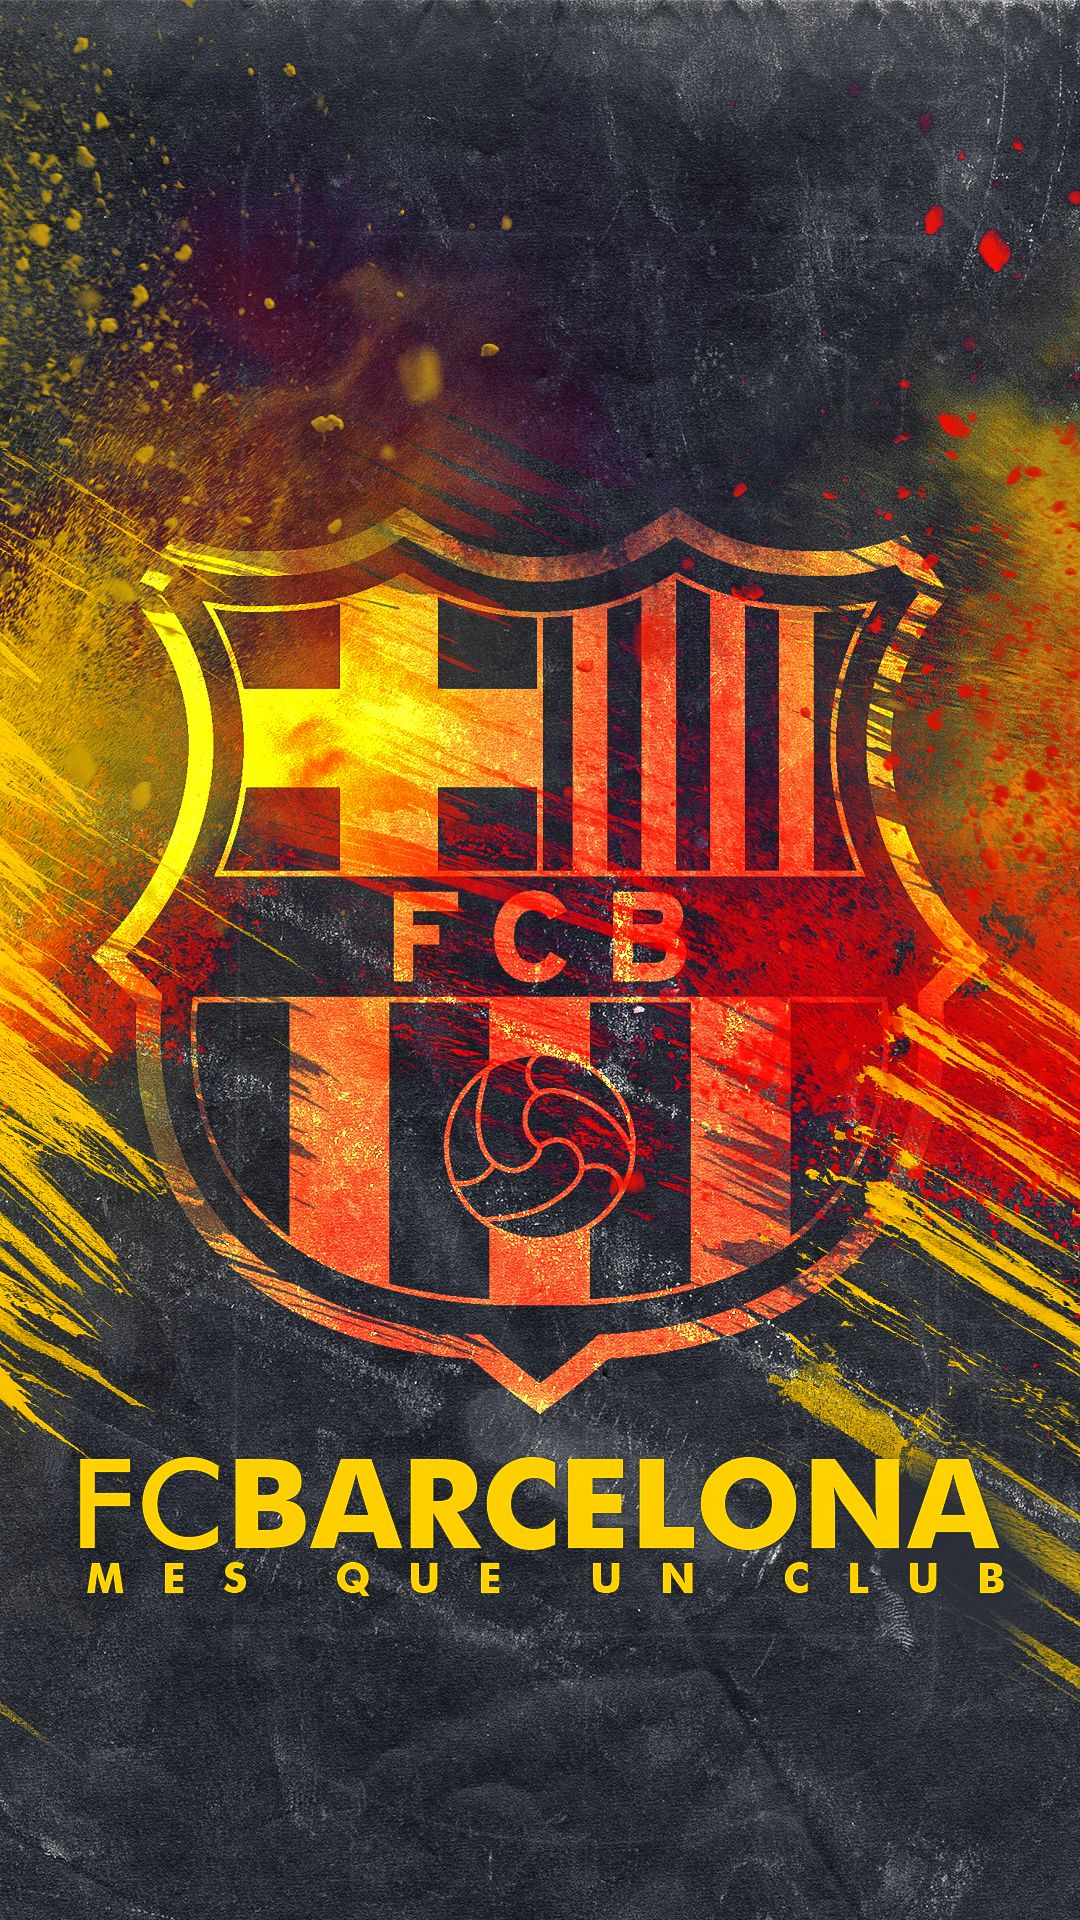 best fc barcelona ideas on pinterest | fc barcelona | pinterest